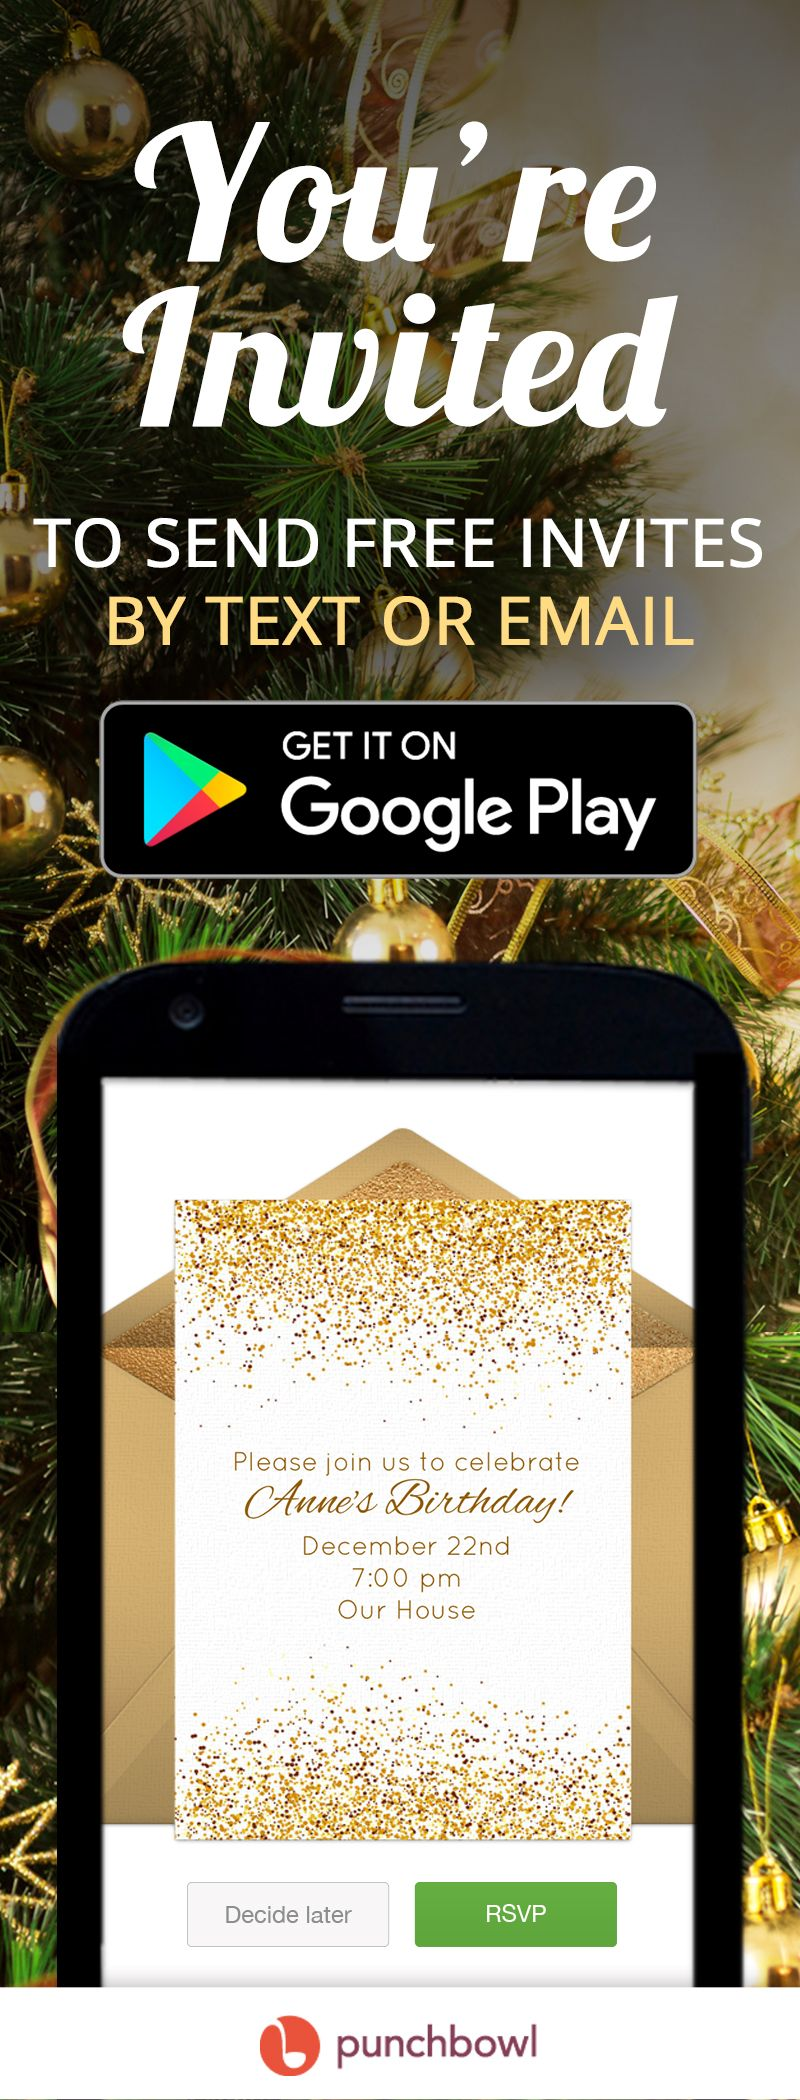 Send Free Christmas Birthday Invitations By Text Message Right From Your Phone And Get RSVPs Instantly